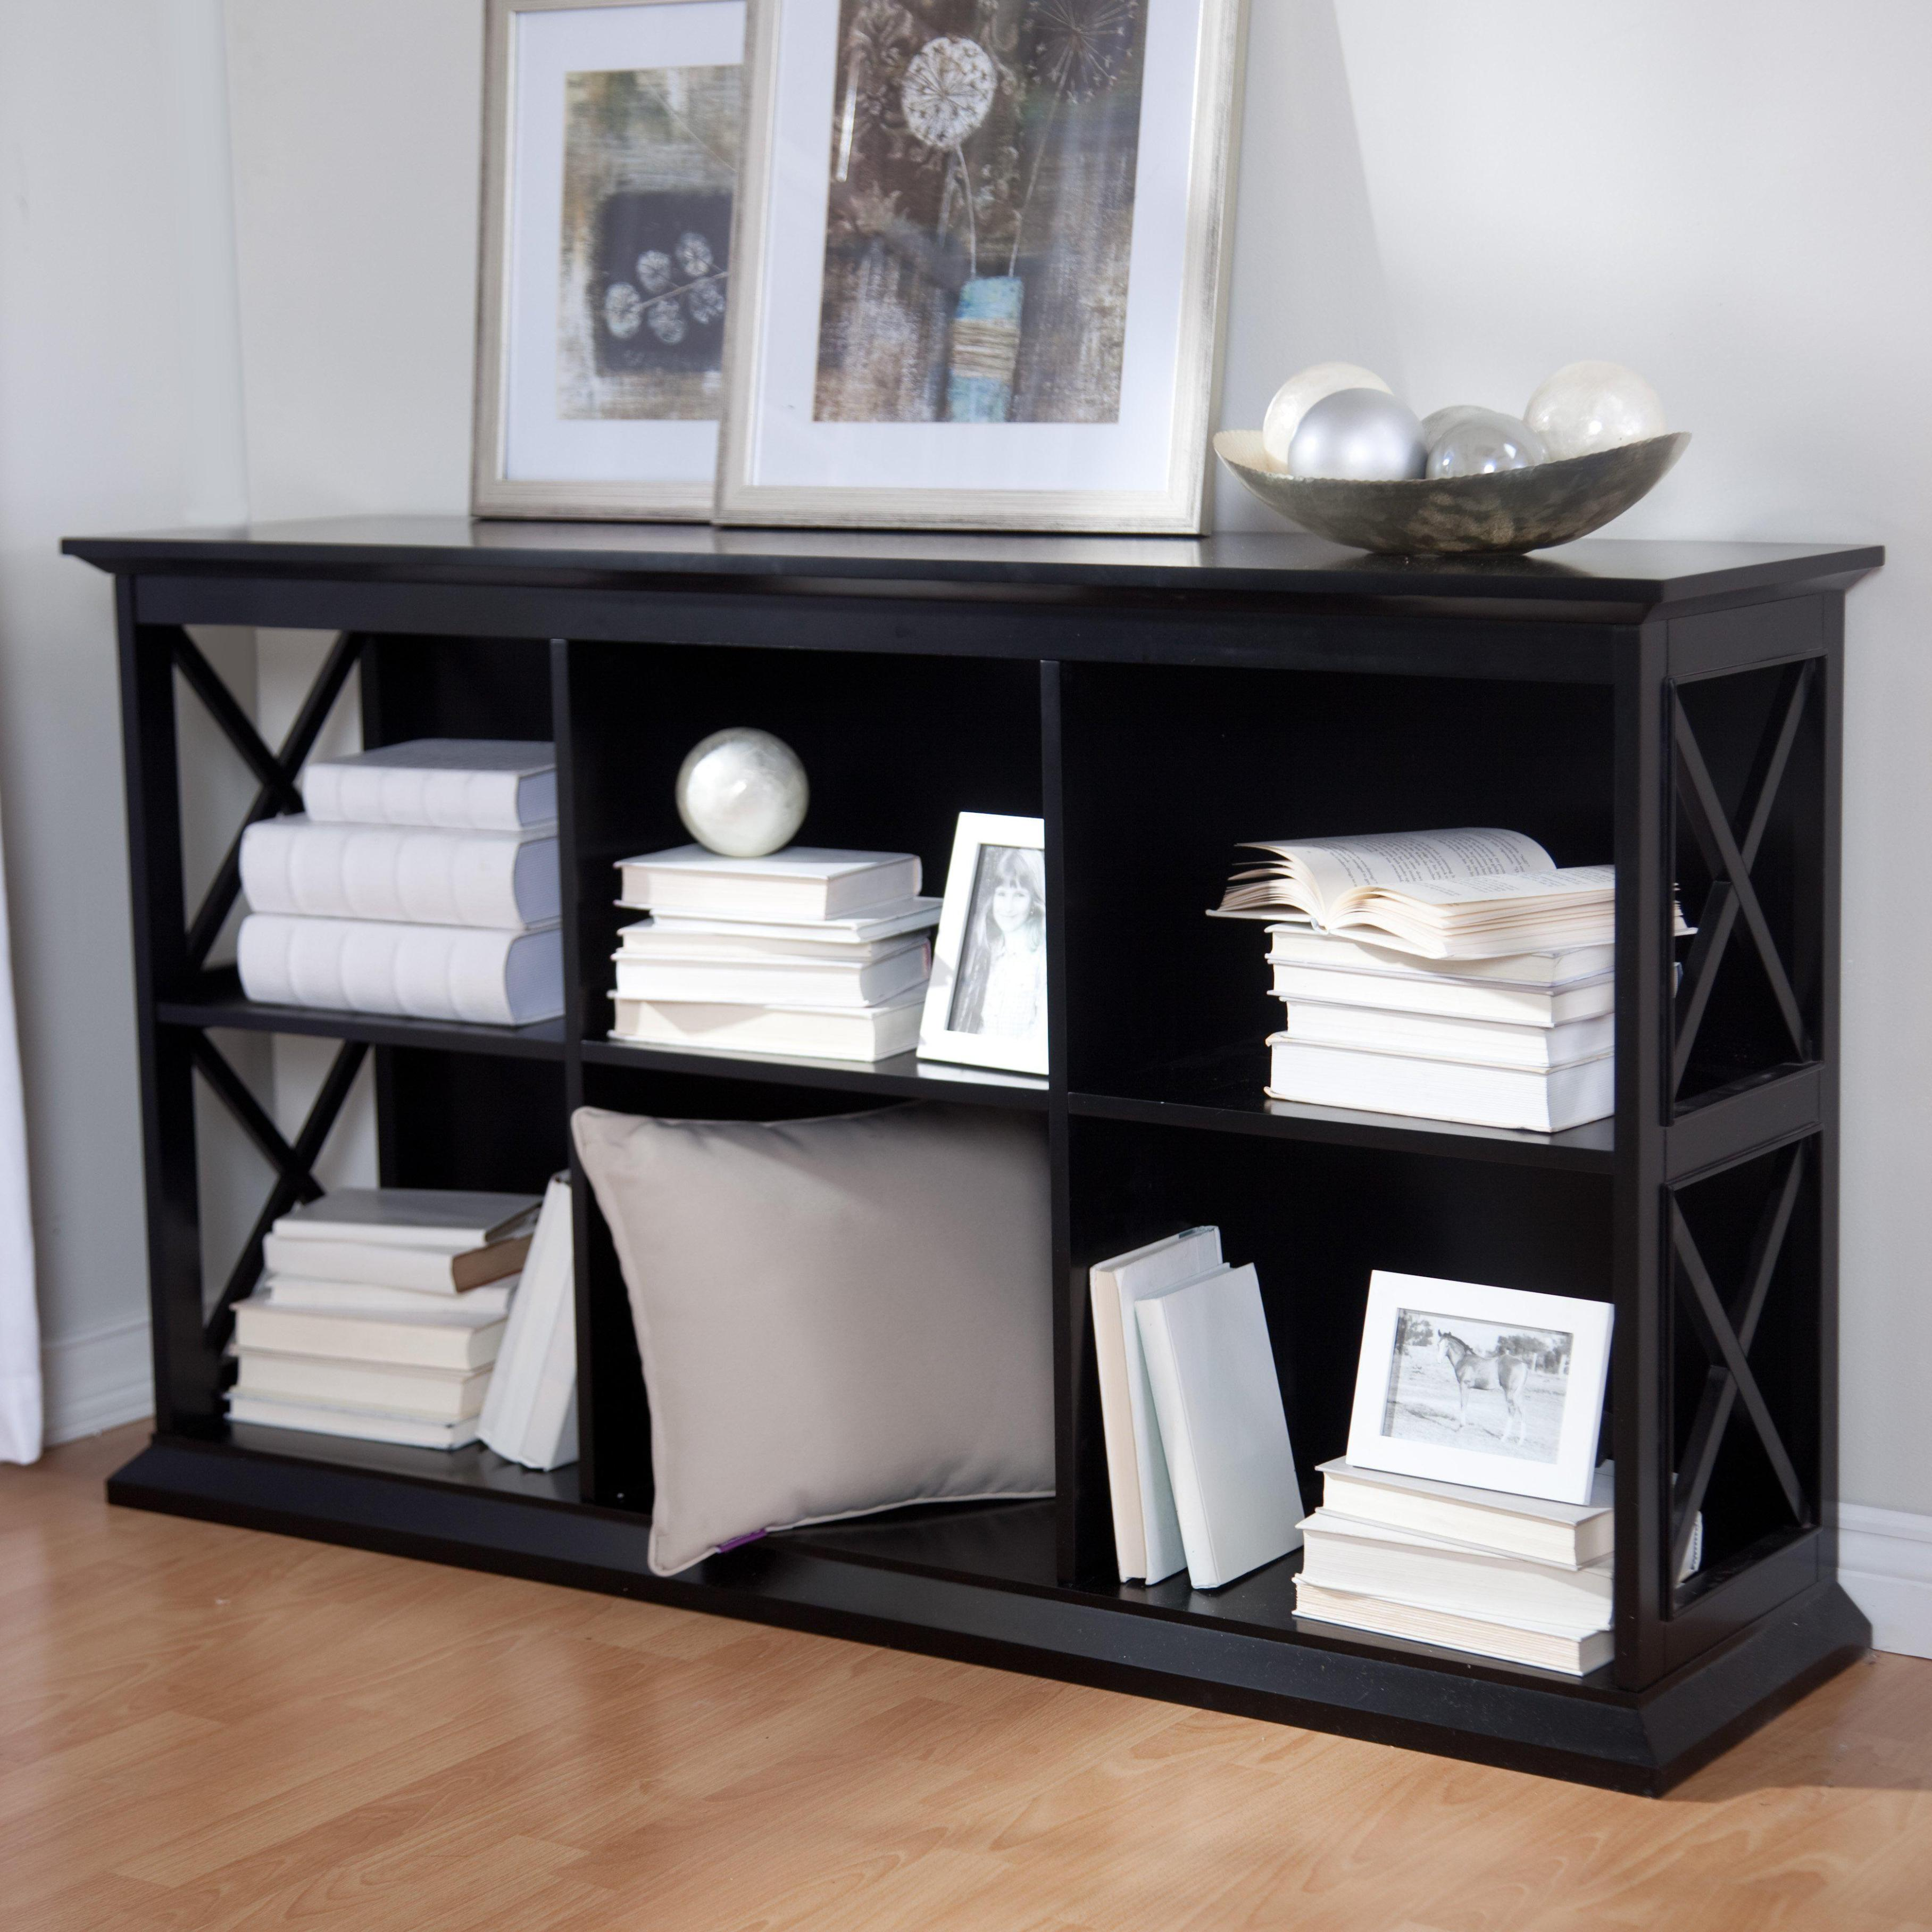 Image of: Short Black Bookcase